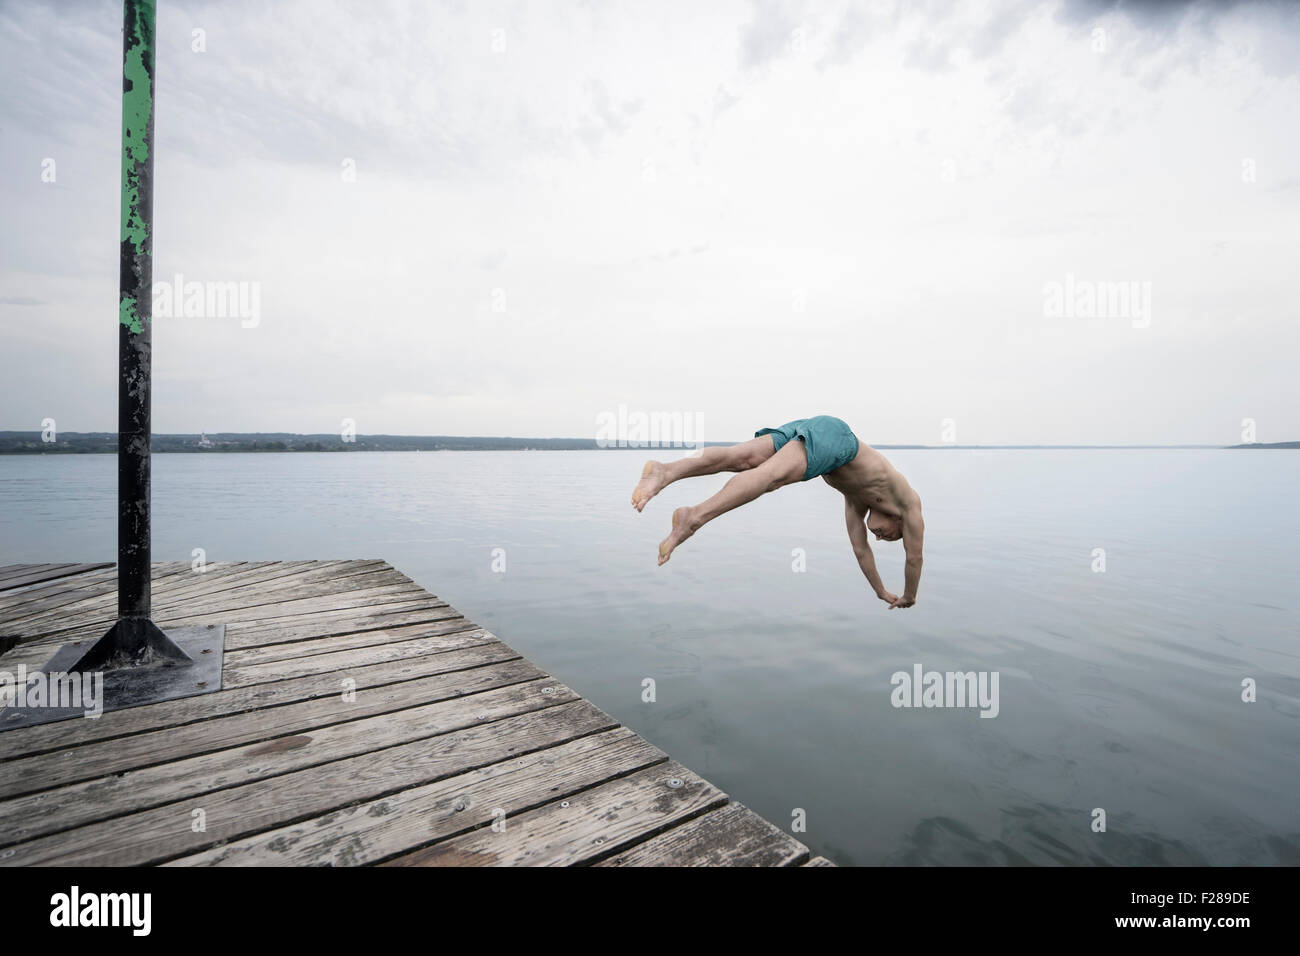 Mature man jumping into water on pier, Baden-Wurttemberg, Bavaria, Germany - Stock Image